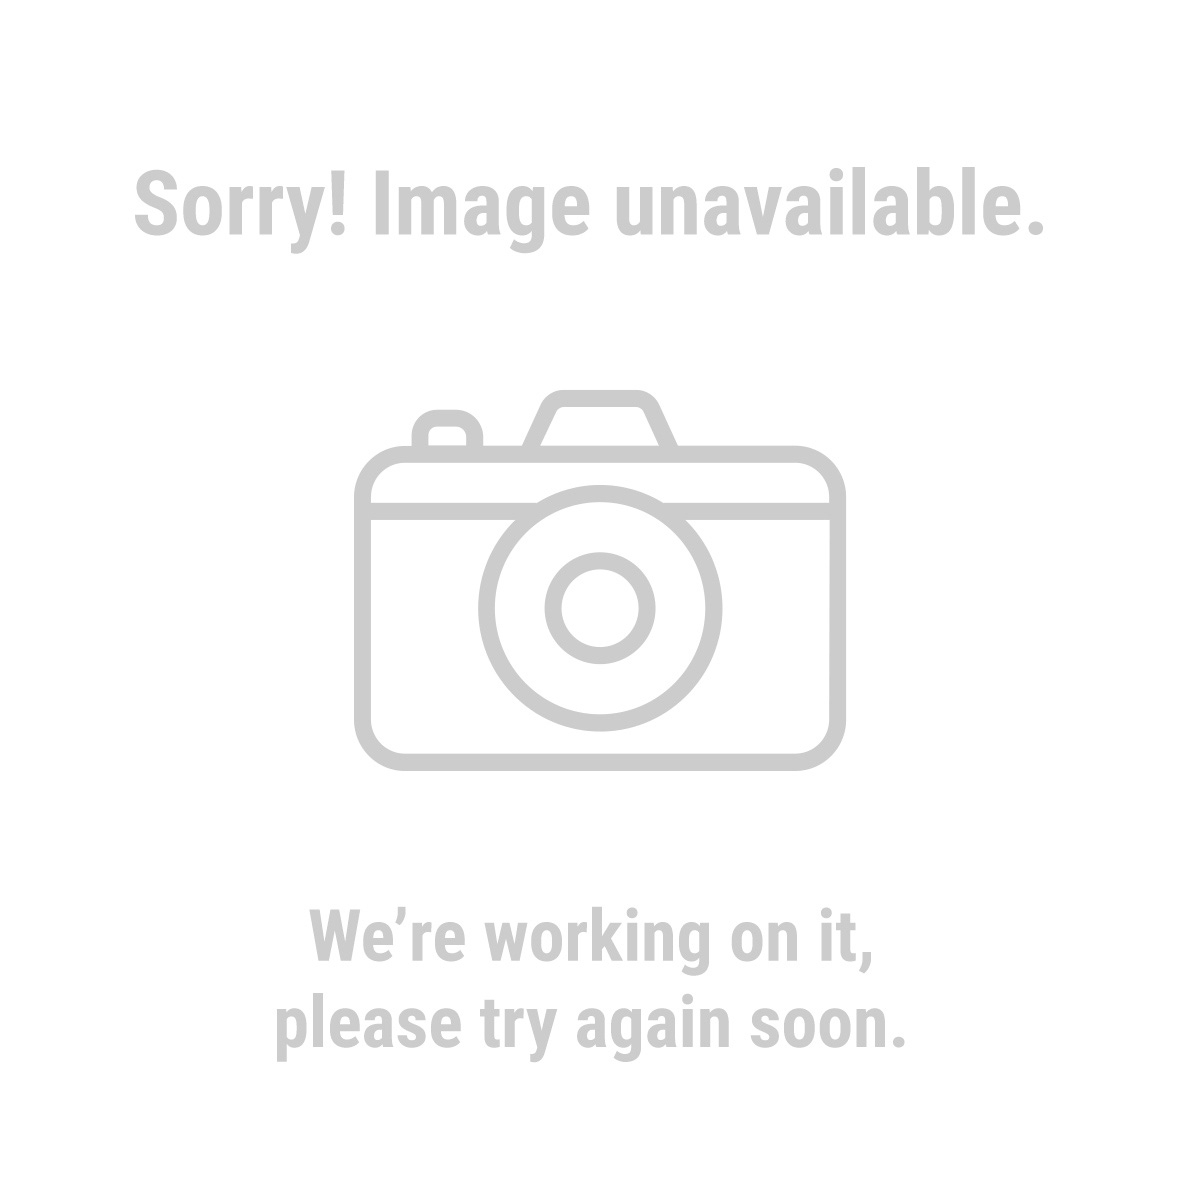 Haul-Master 61175 2 in. x 20 ft. Heavy Duty Recovery Strap